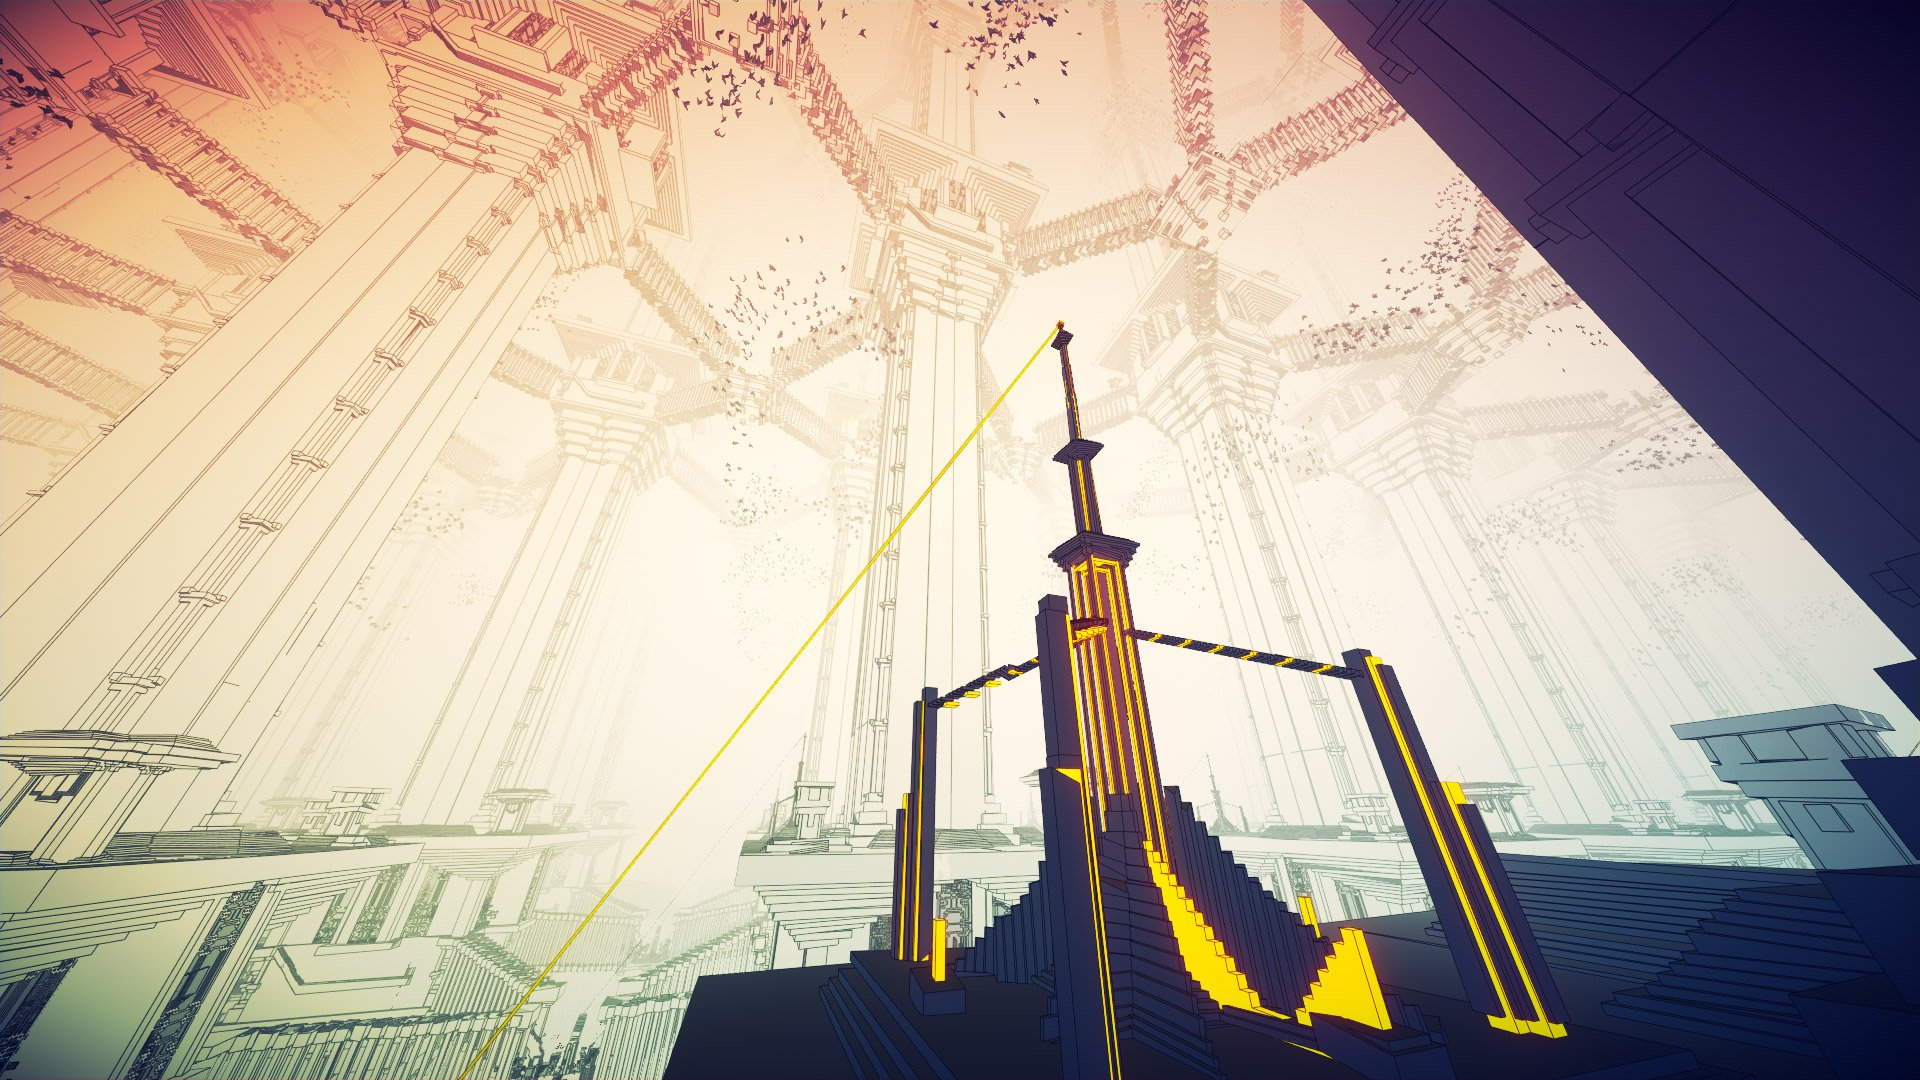 Manifold Garden is finally done and it's out this week screenshot